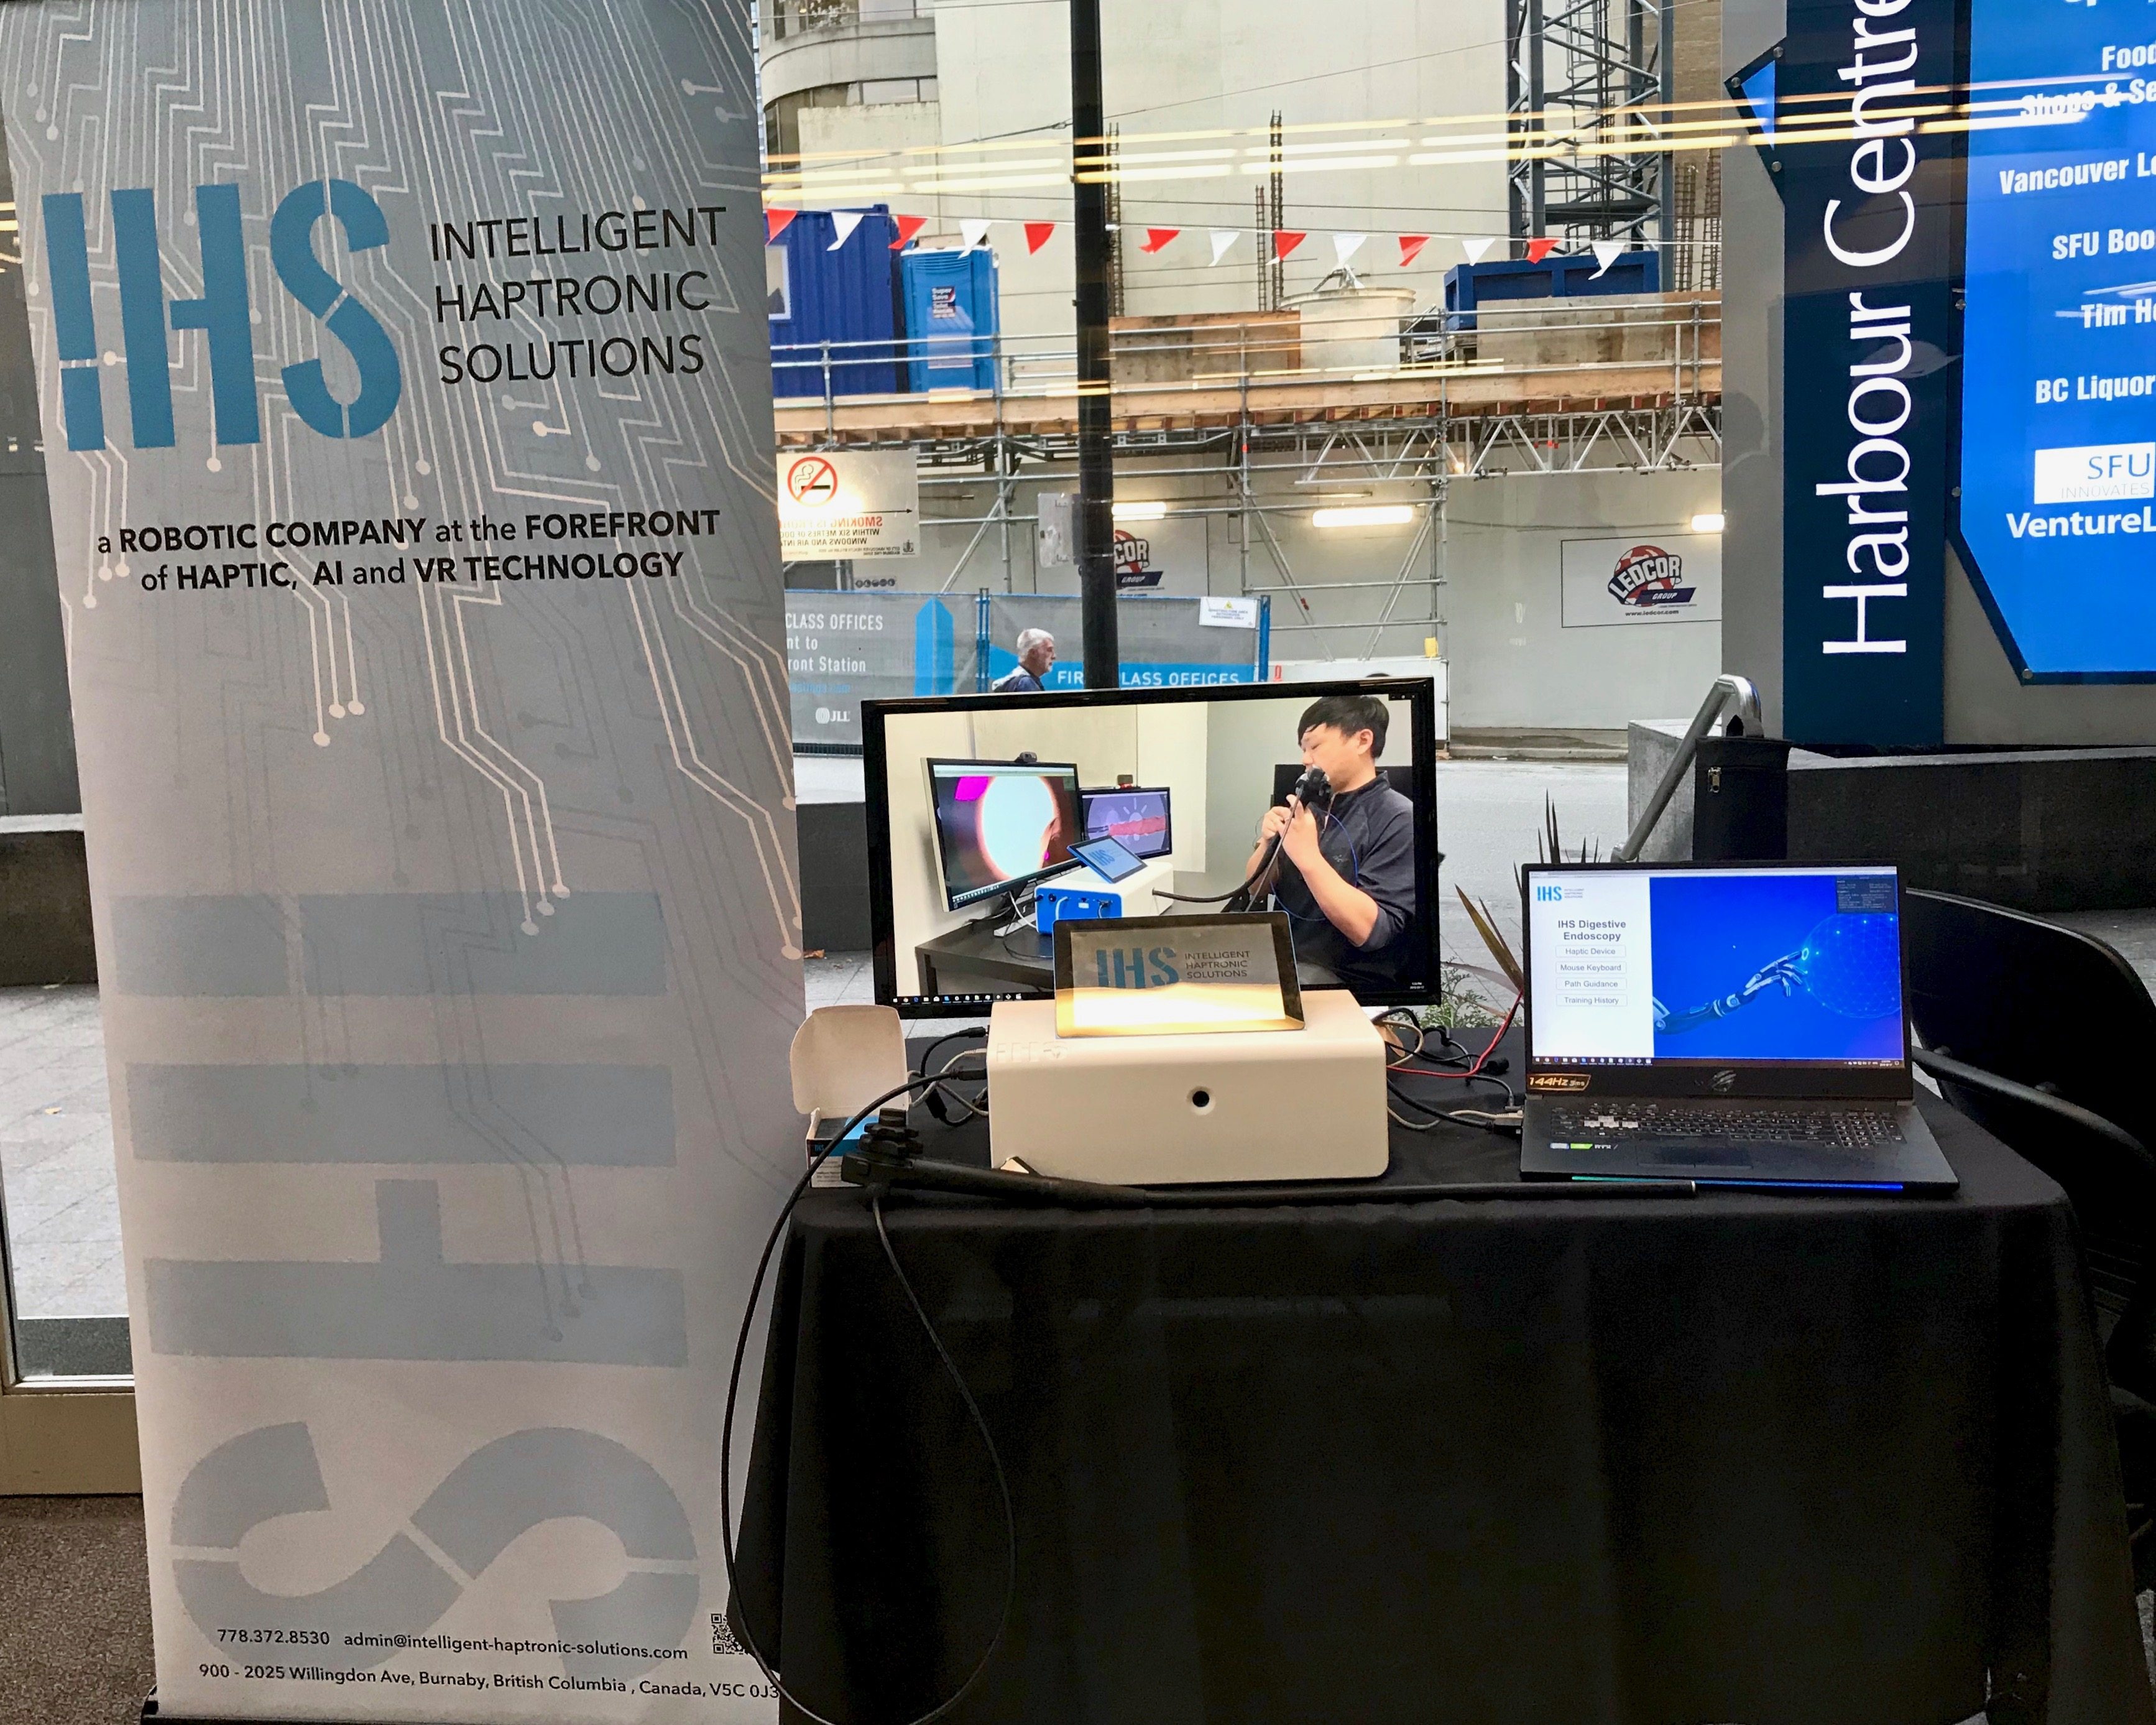 Intelligent Haptronic Solutions at Vancouver Startup Week 2019